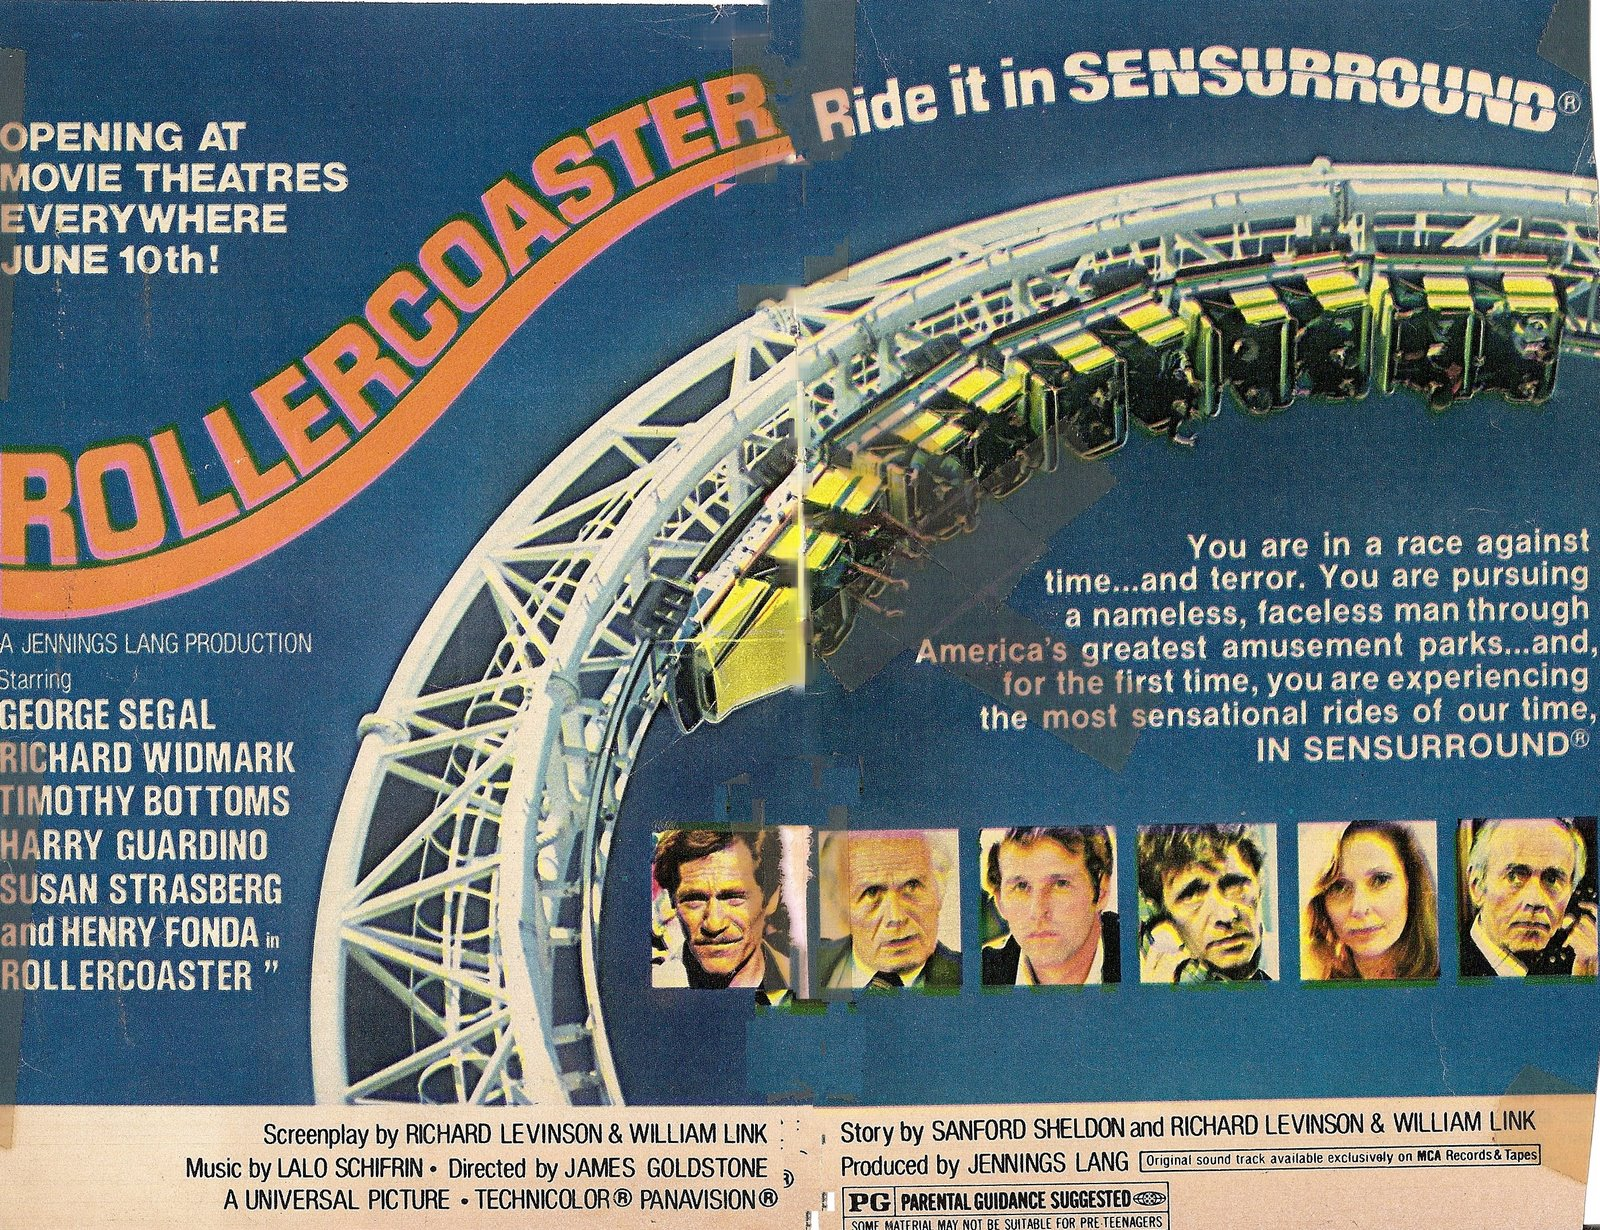 Rollercoaster Sensurround Poster 2 Flashbak